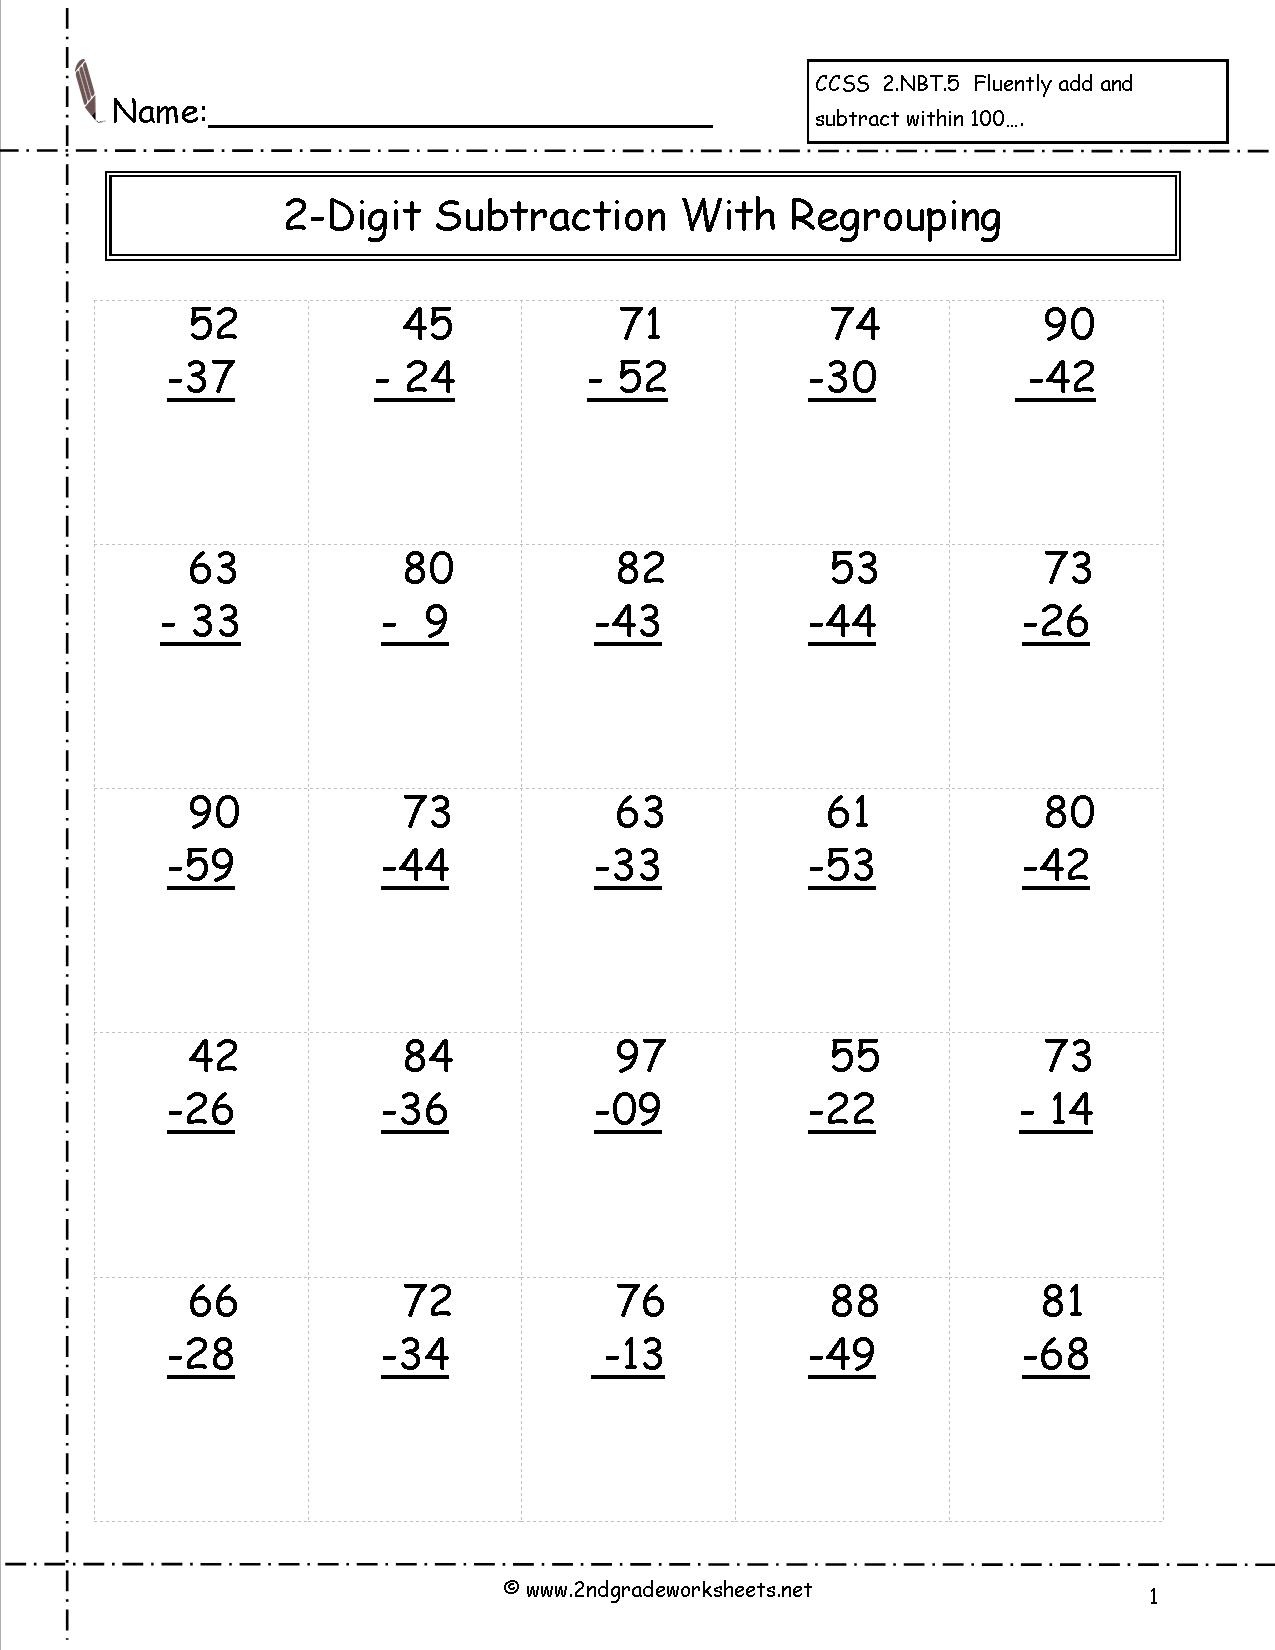 Free Math Worksheets And Printouts - Free Printable Double Digit Addition And Subtraction Worksheets